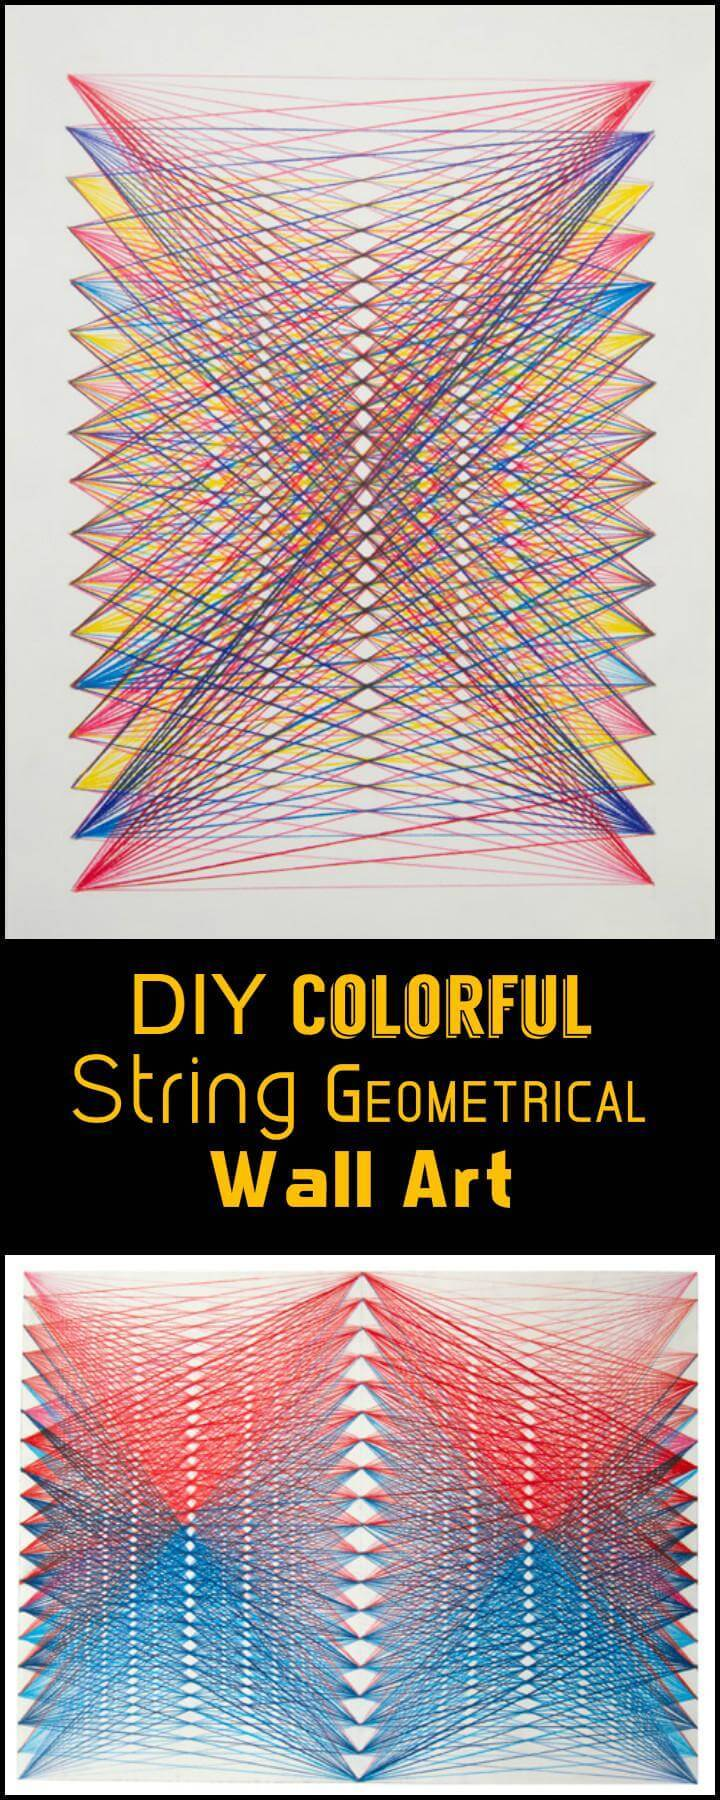 DIY Colorful String Geometrical Wall Art